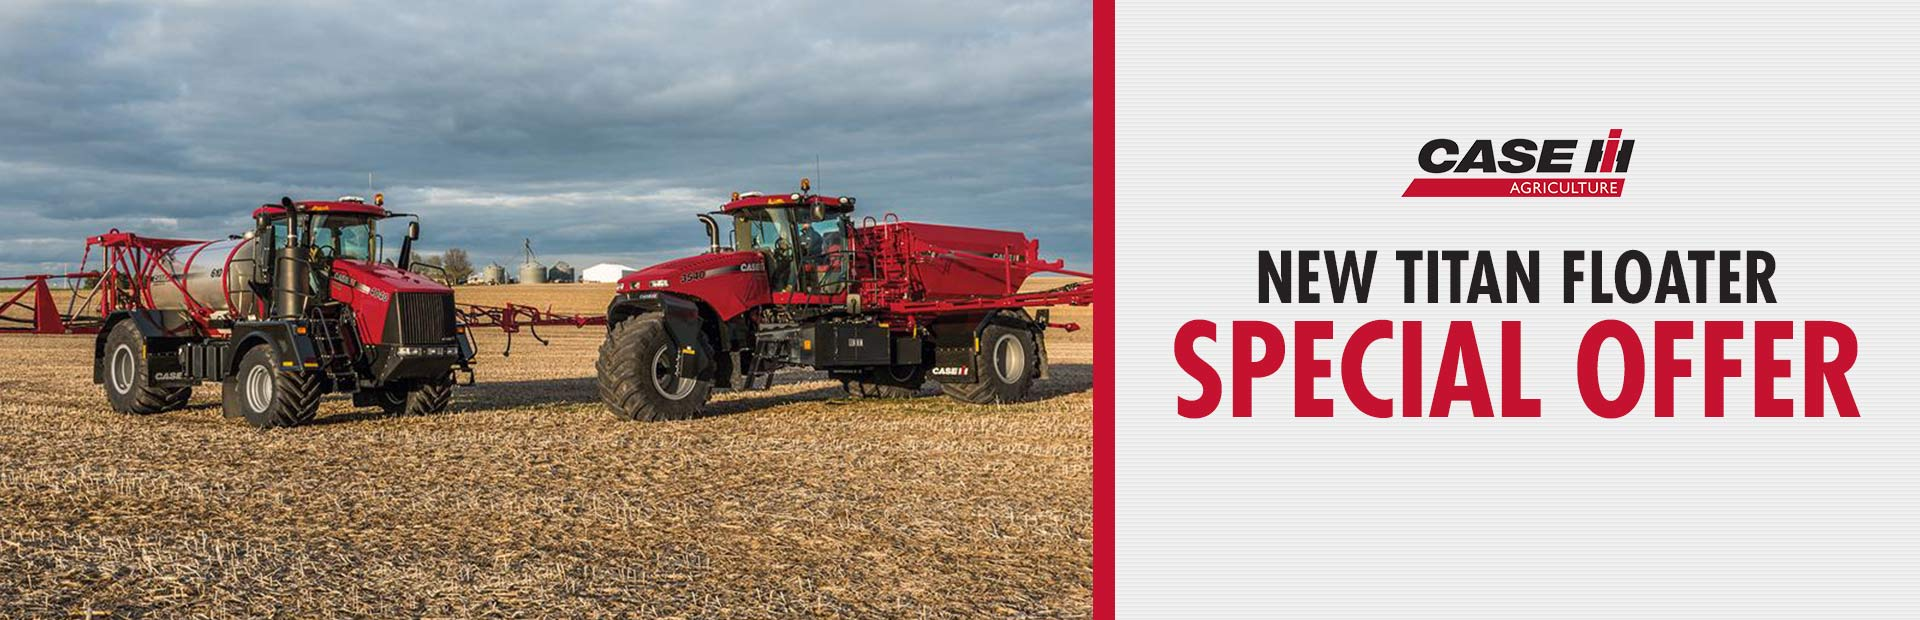 Case IH: New Titan Floater Offer